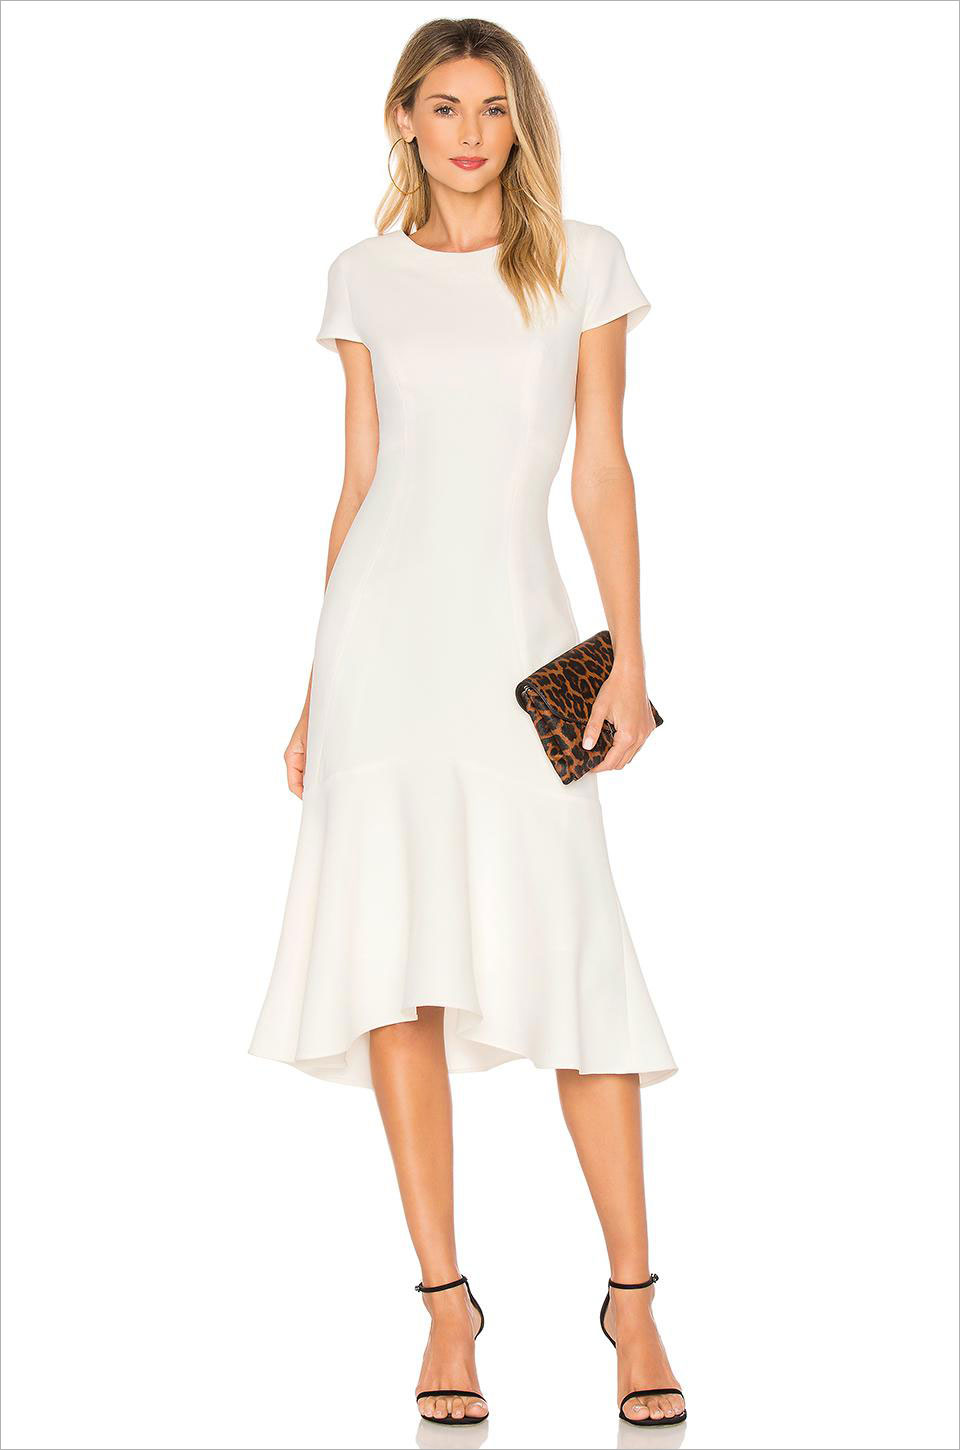 Evalina short sleeve white dress amanda uprichard rehearsal dinner bridal shower dress ideas